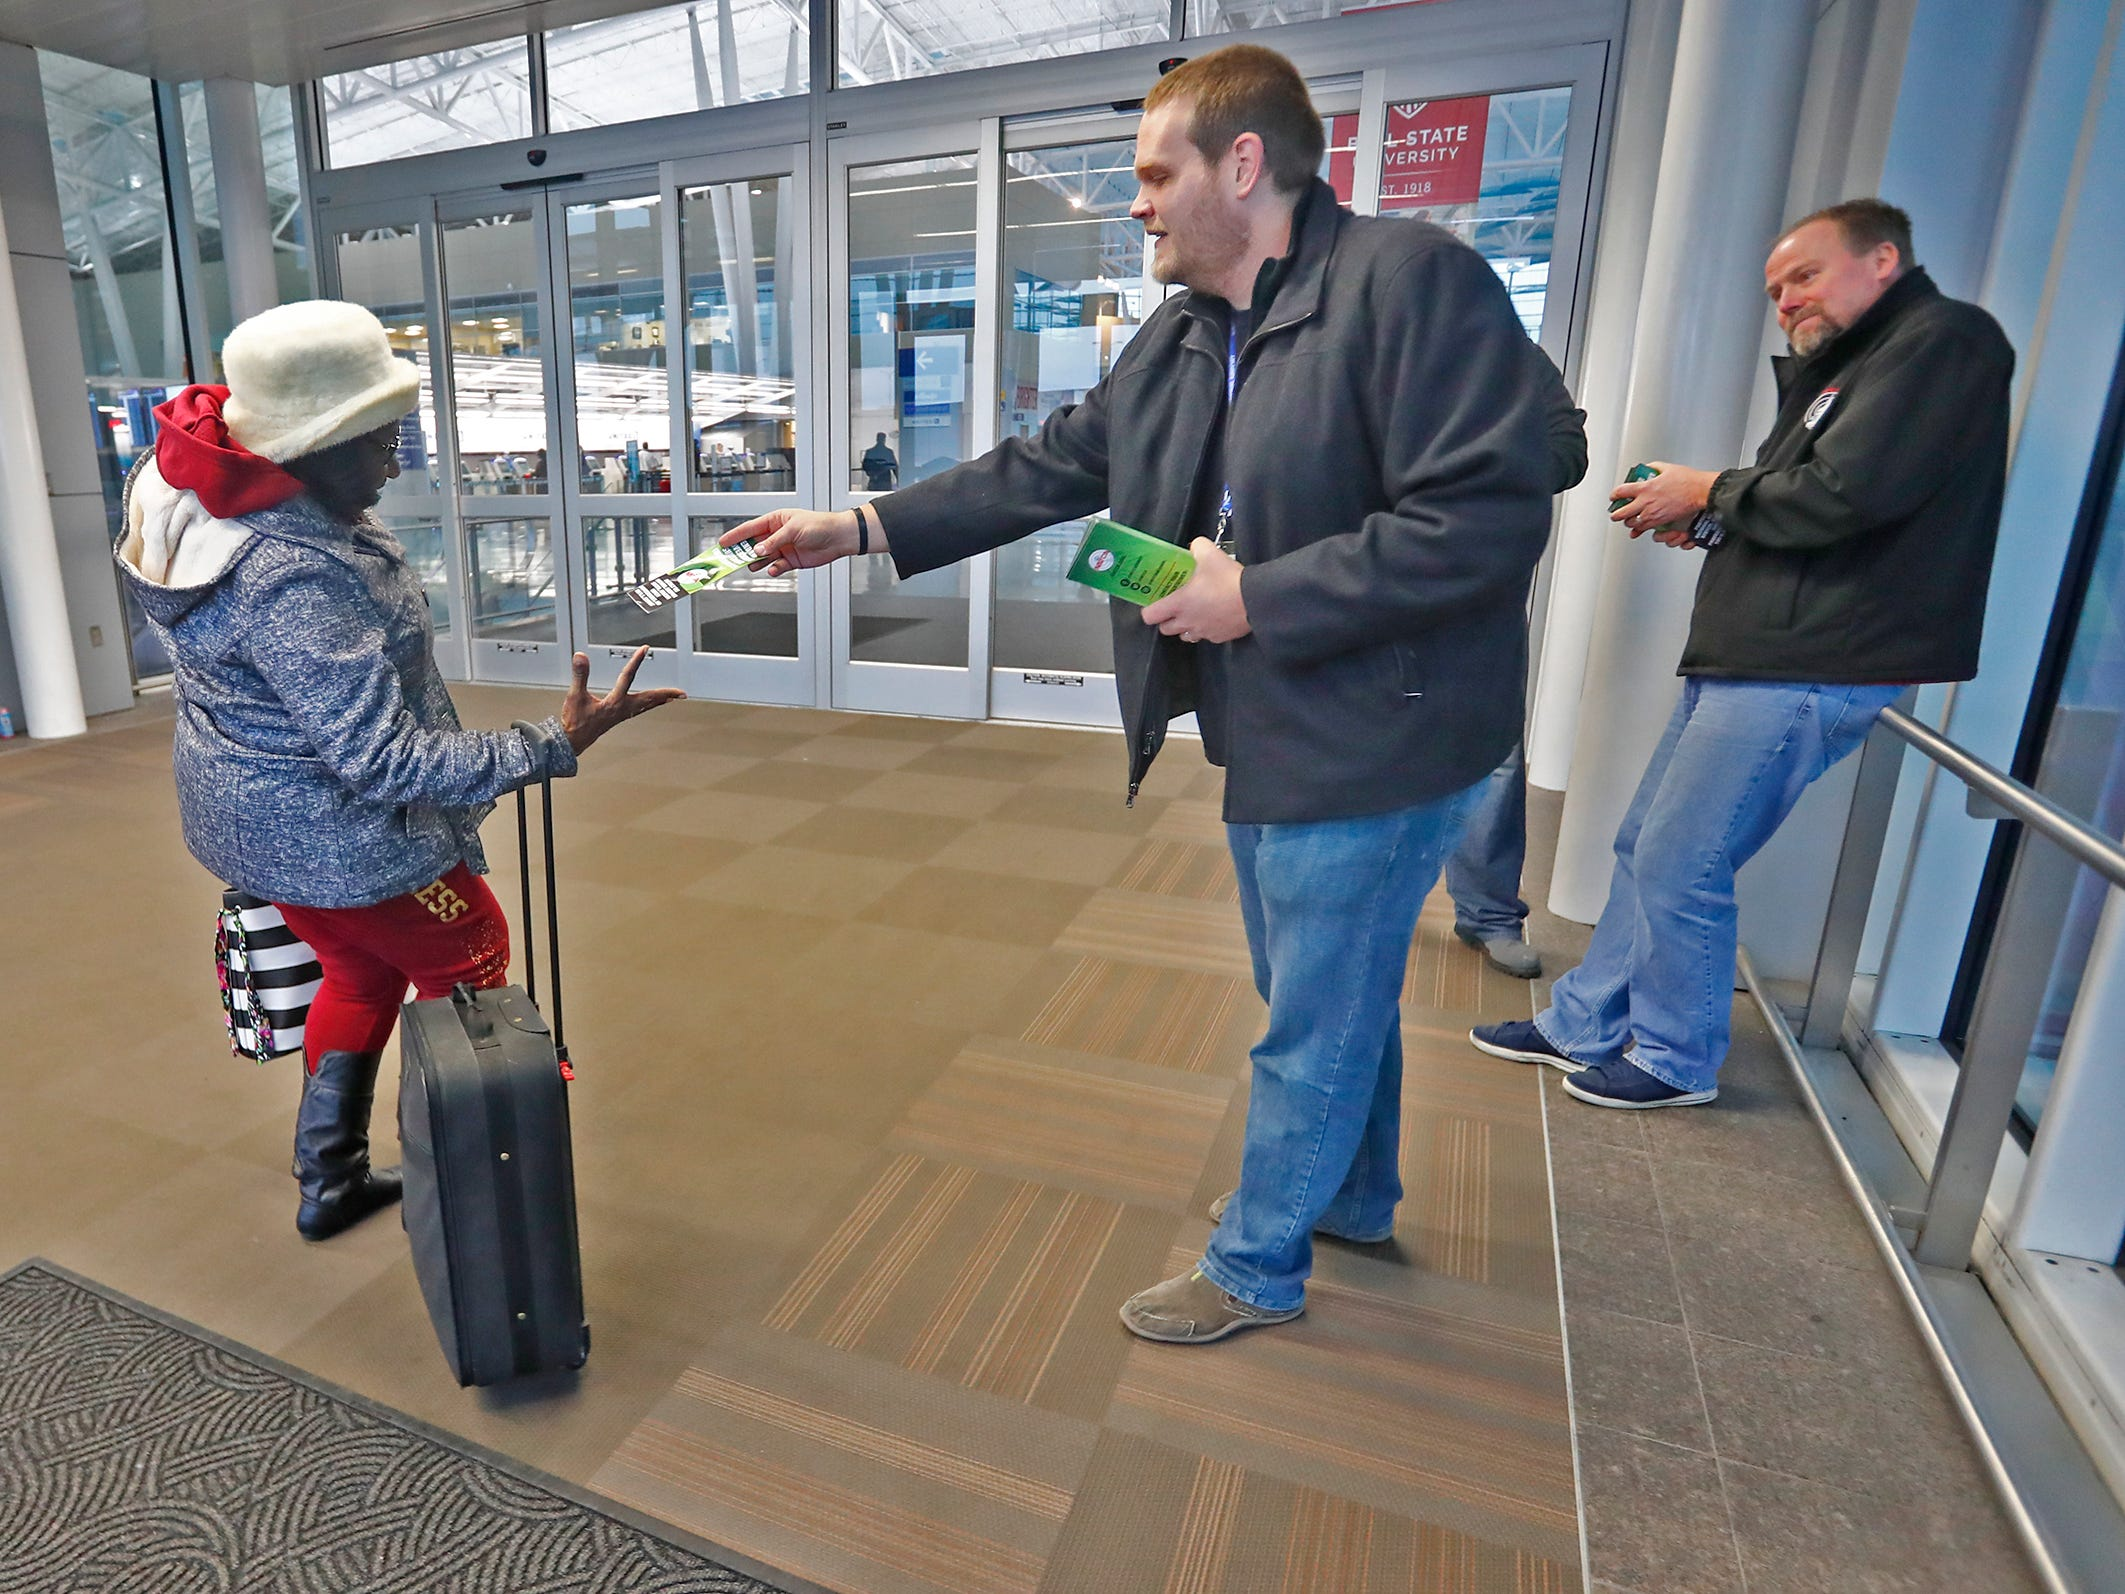 Air Traffic Control Specialist Aaron McCreery, center, hands out a pamphlet to a traveler at the Indianapolis International Airport, Tuesday, Jan. 15, 2019.  Air Traffic Control Specialist Beau Brown, right, also is on hand to distribute information.  Members of the National Air Traffic Controllers Association (NATCA) handed out the pamphlets to travelers to ask for the end of the government shutdown and to list ways the shutdown has affected the aviation safety.  Beau Brown